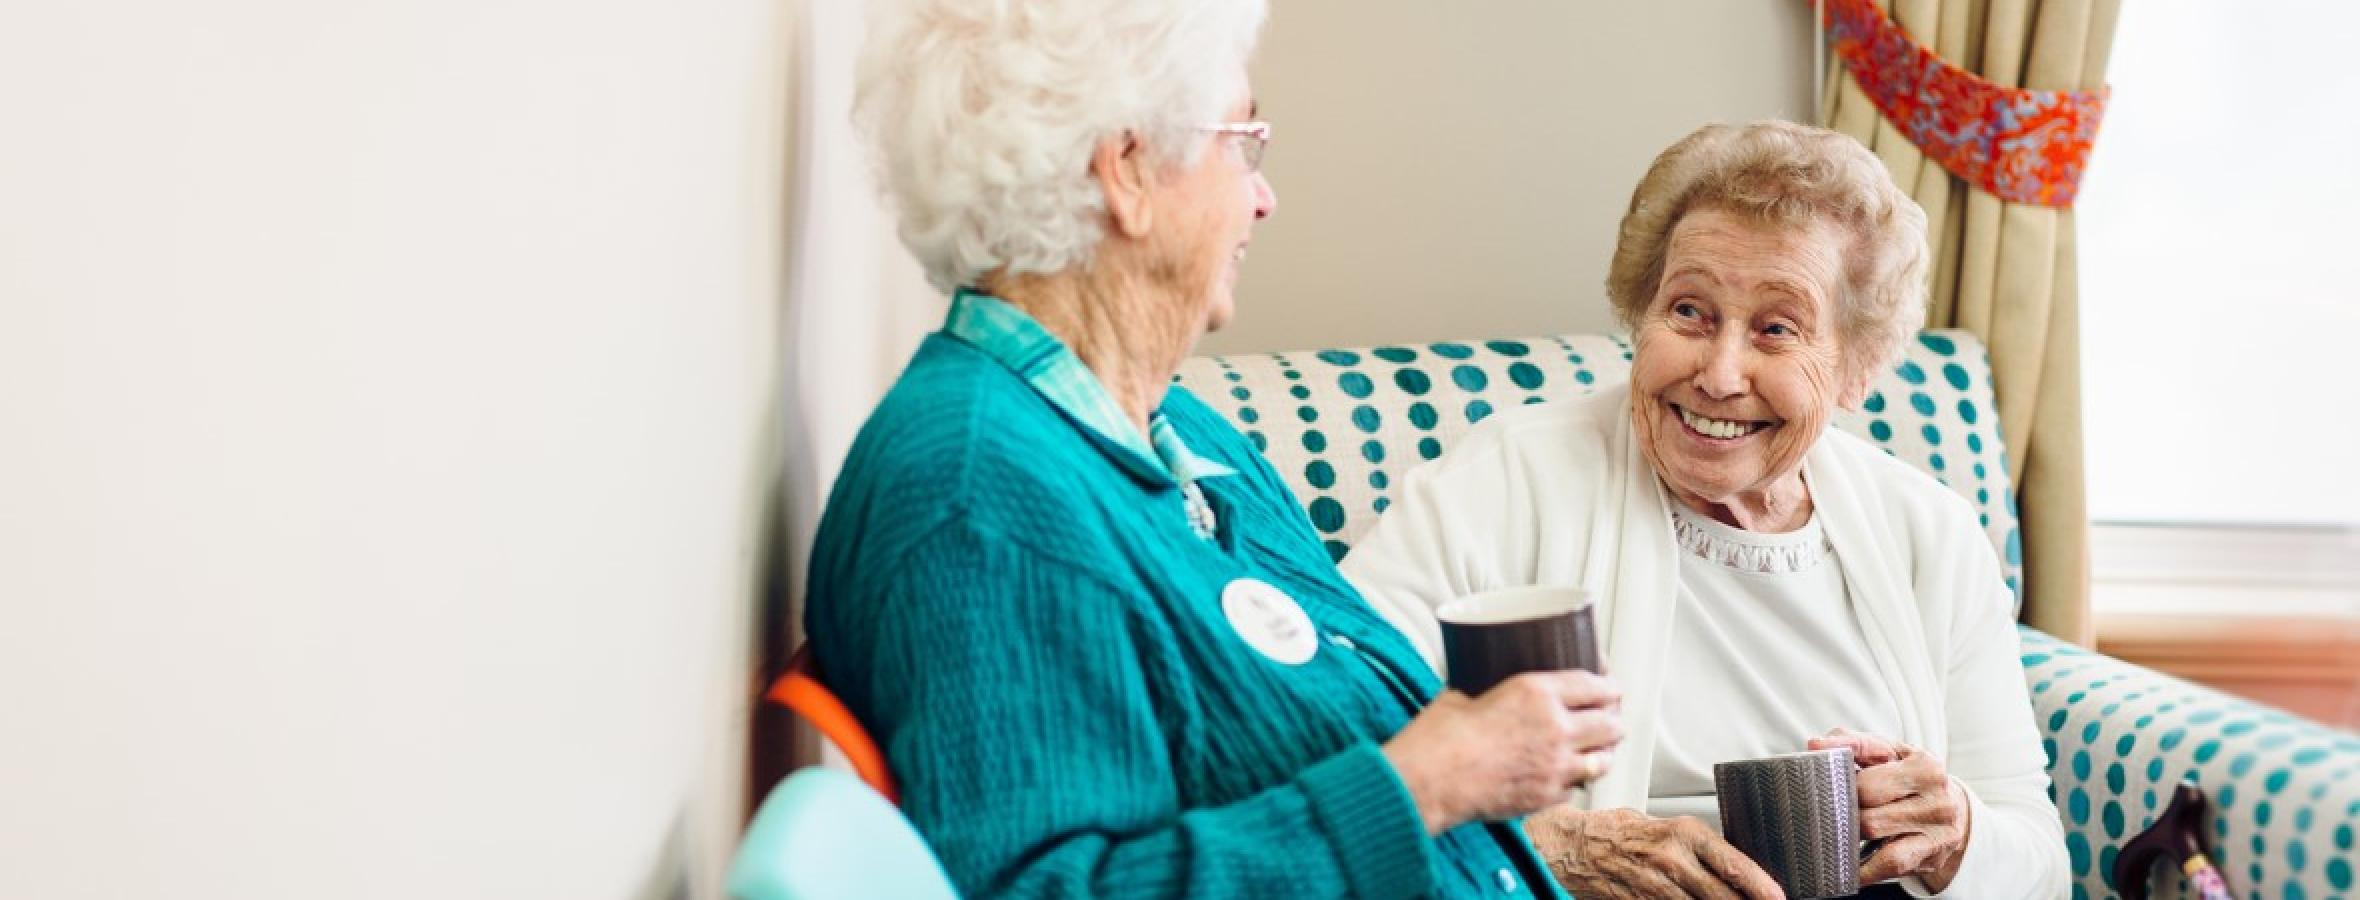 Aged Care Homes Melbourne